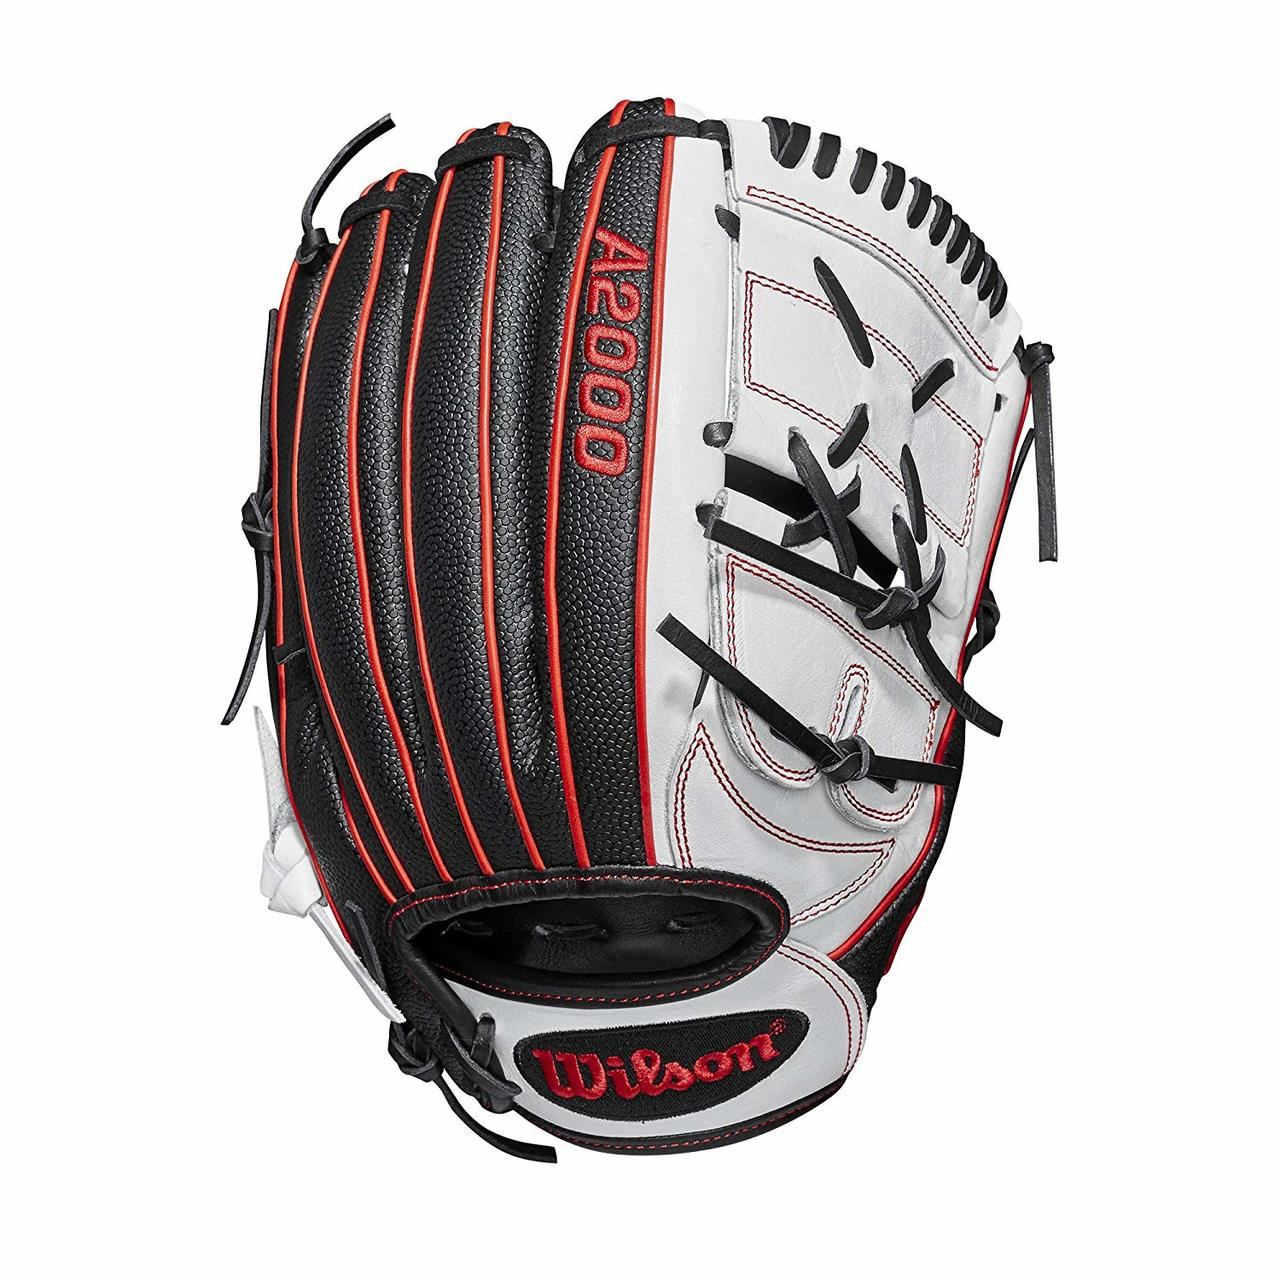 wilson-a200-fast-pitch-softball-glove-monica-abbot-12-25-right-hand-throw WTA20RF19MA14GM-RightHandThrow Wilson 887768732240 12.25 pitchers glove 2-piece web Black SuperSkin twice as strong as